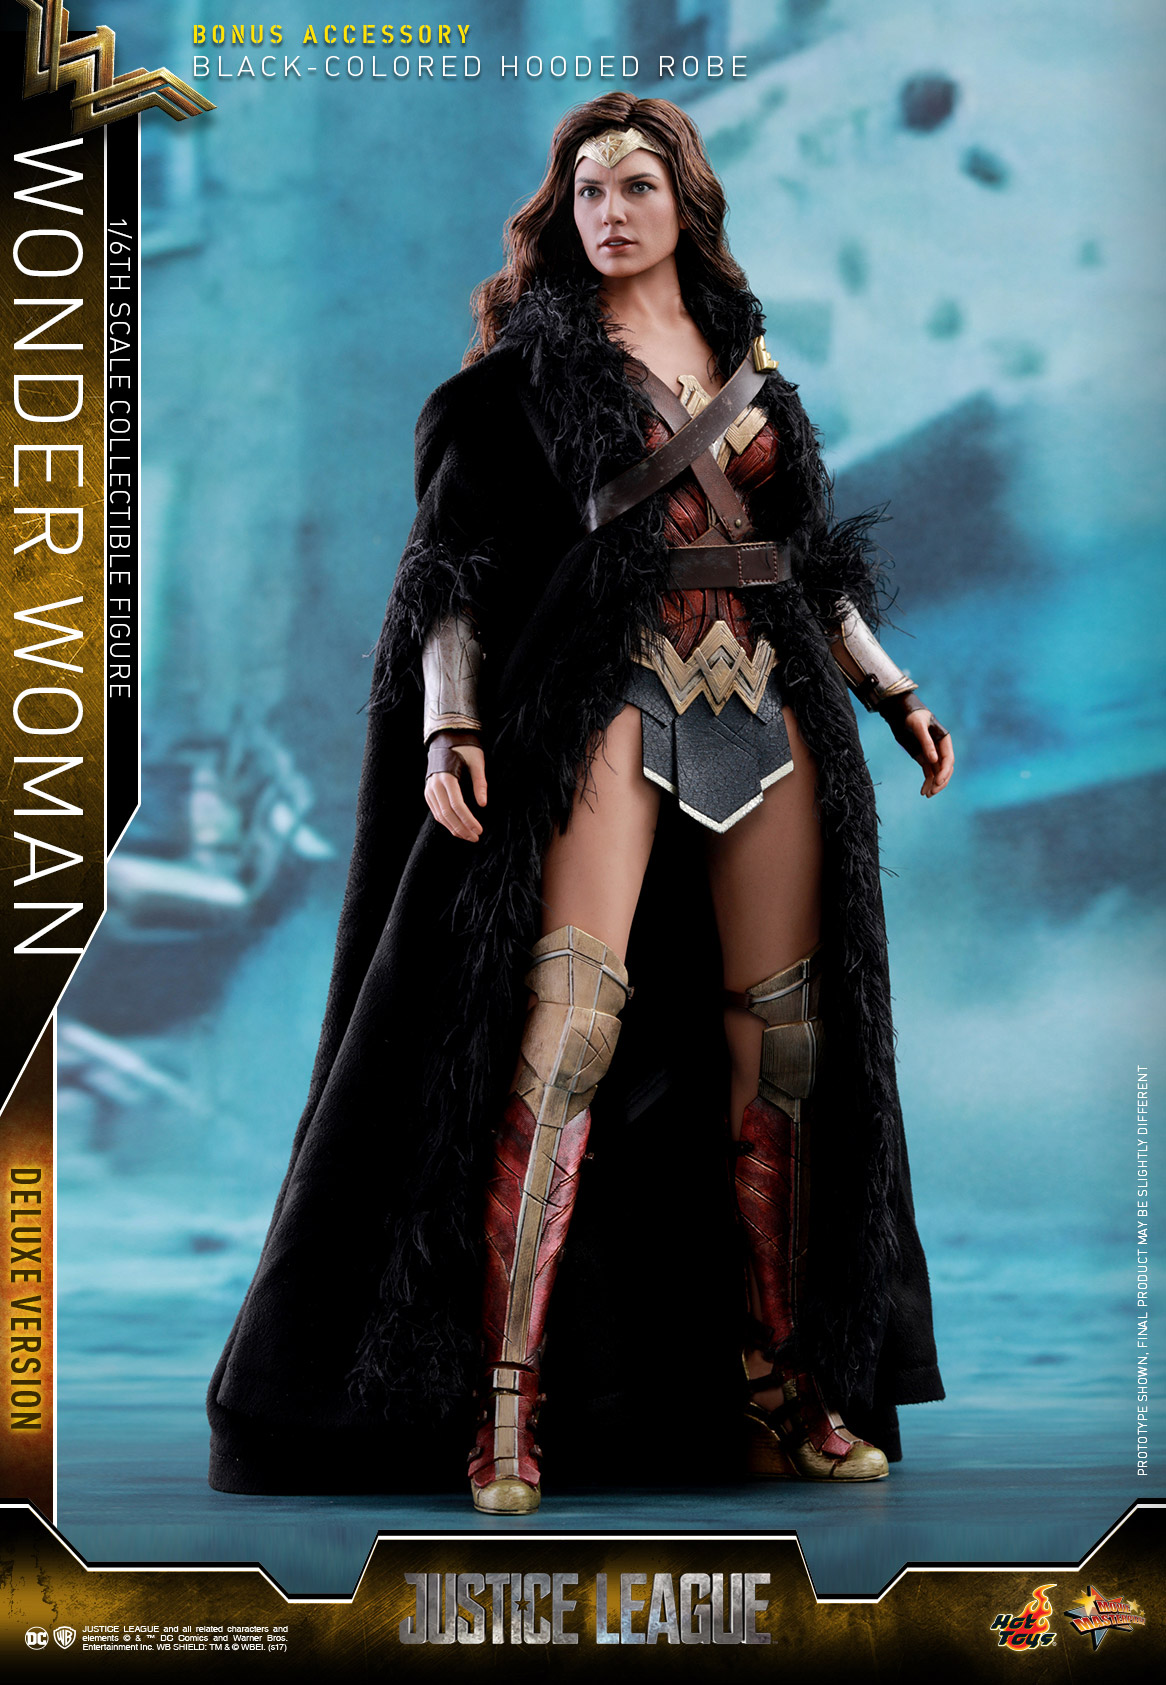 Hot-Toys-Justice-League-Wonder-Woman-collectible-figure-Deluxe_PR-5.jpg